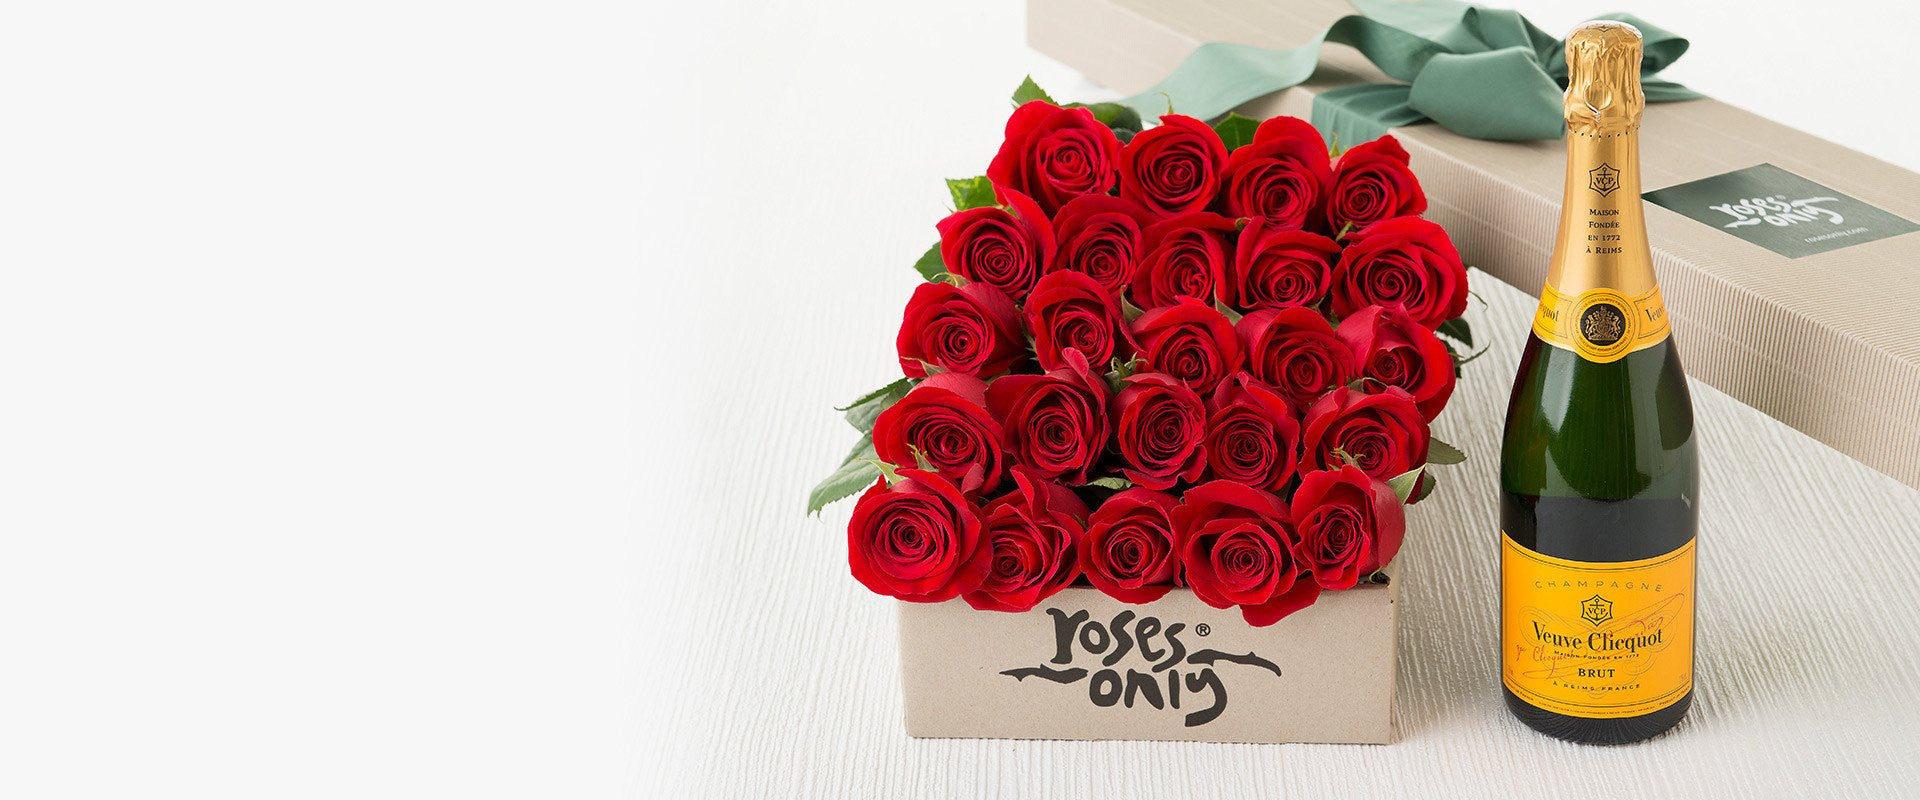 (Who said {romance} was dead?) 24 long red roses + Veuve Clicquot only £169.95